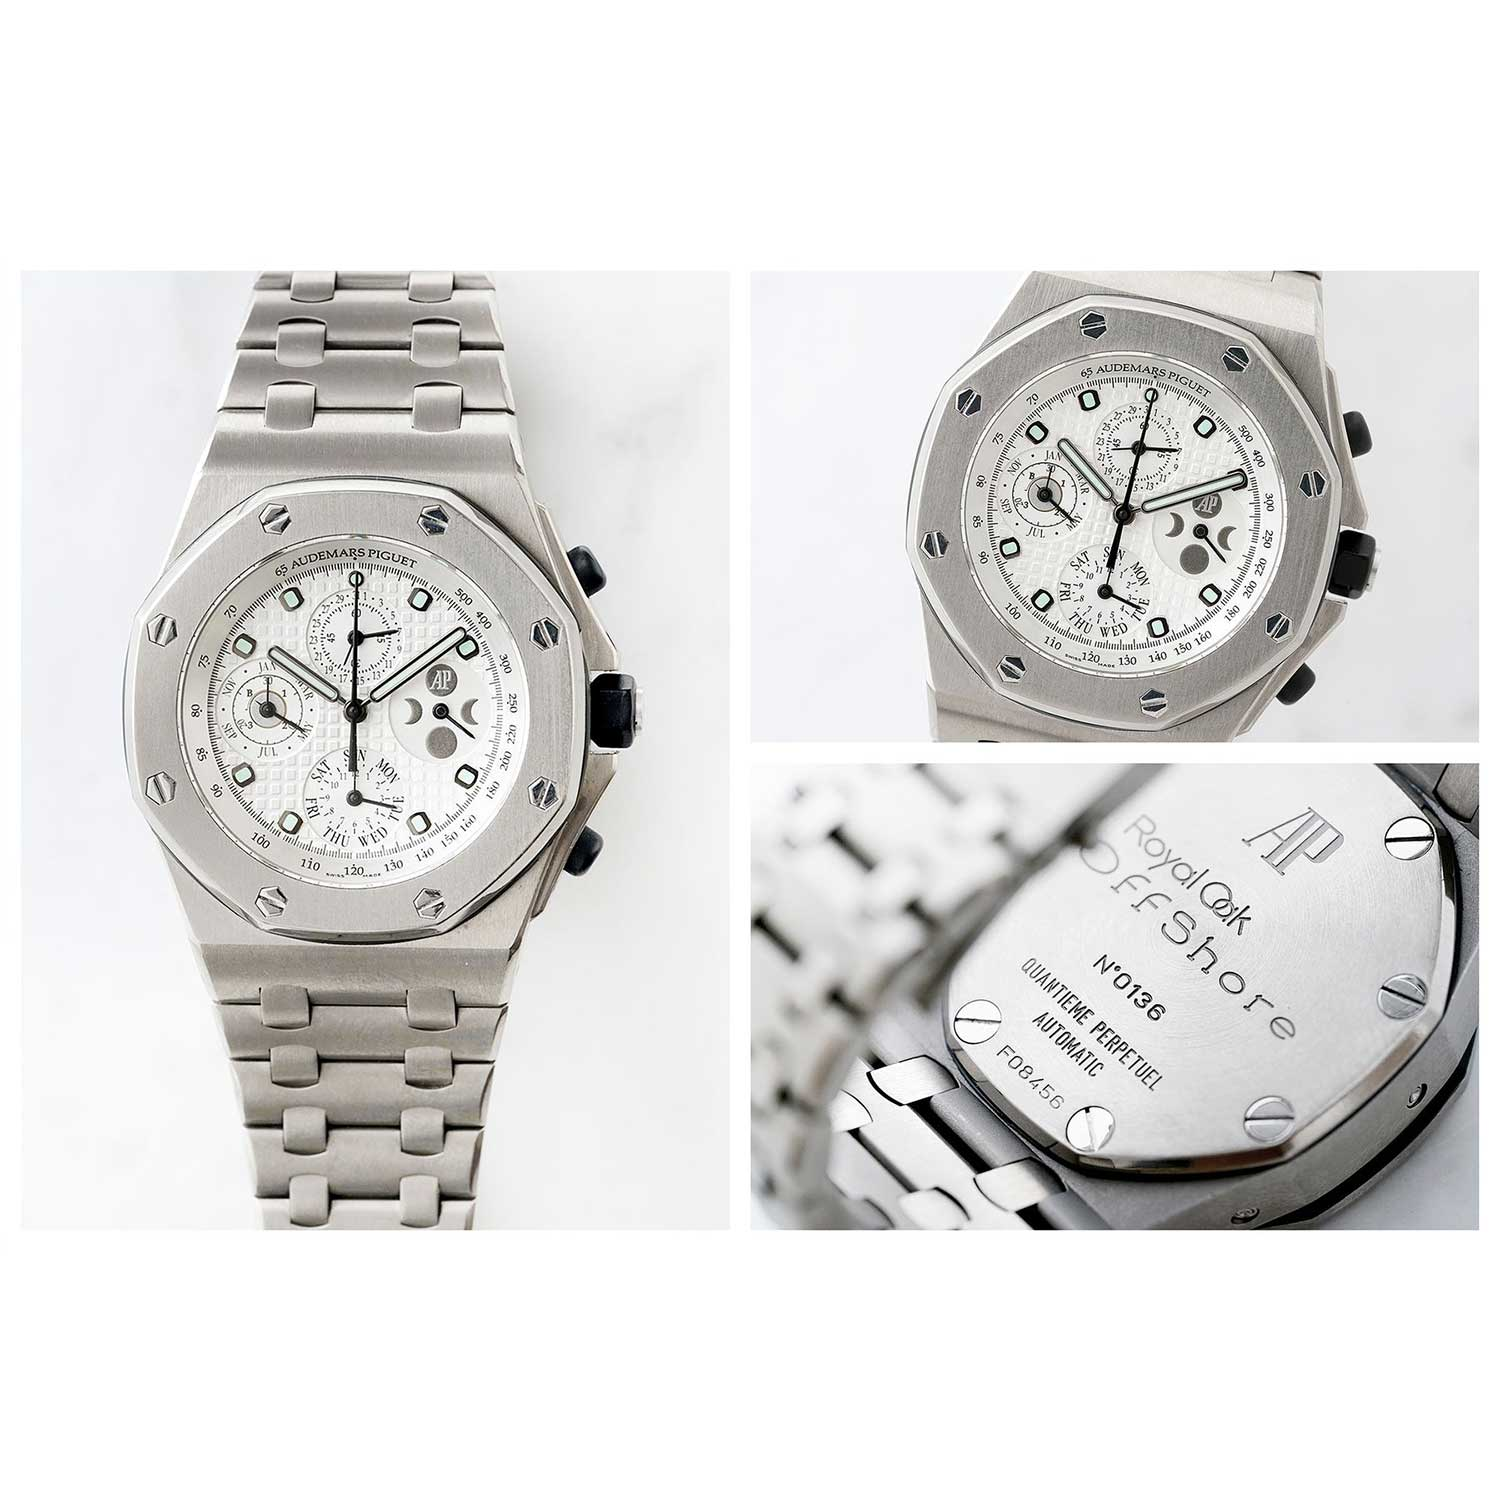 The 2003 Royal Oak Offshore Perpetual Calendar ref. 25854TI in titanium with a white dial (phillipswatches.com)